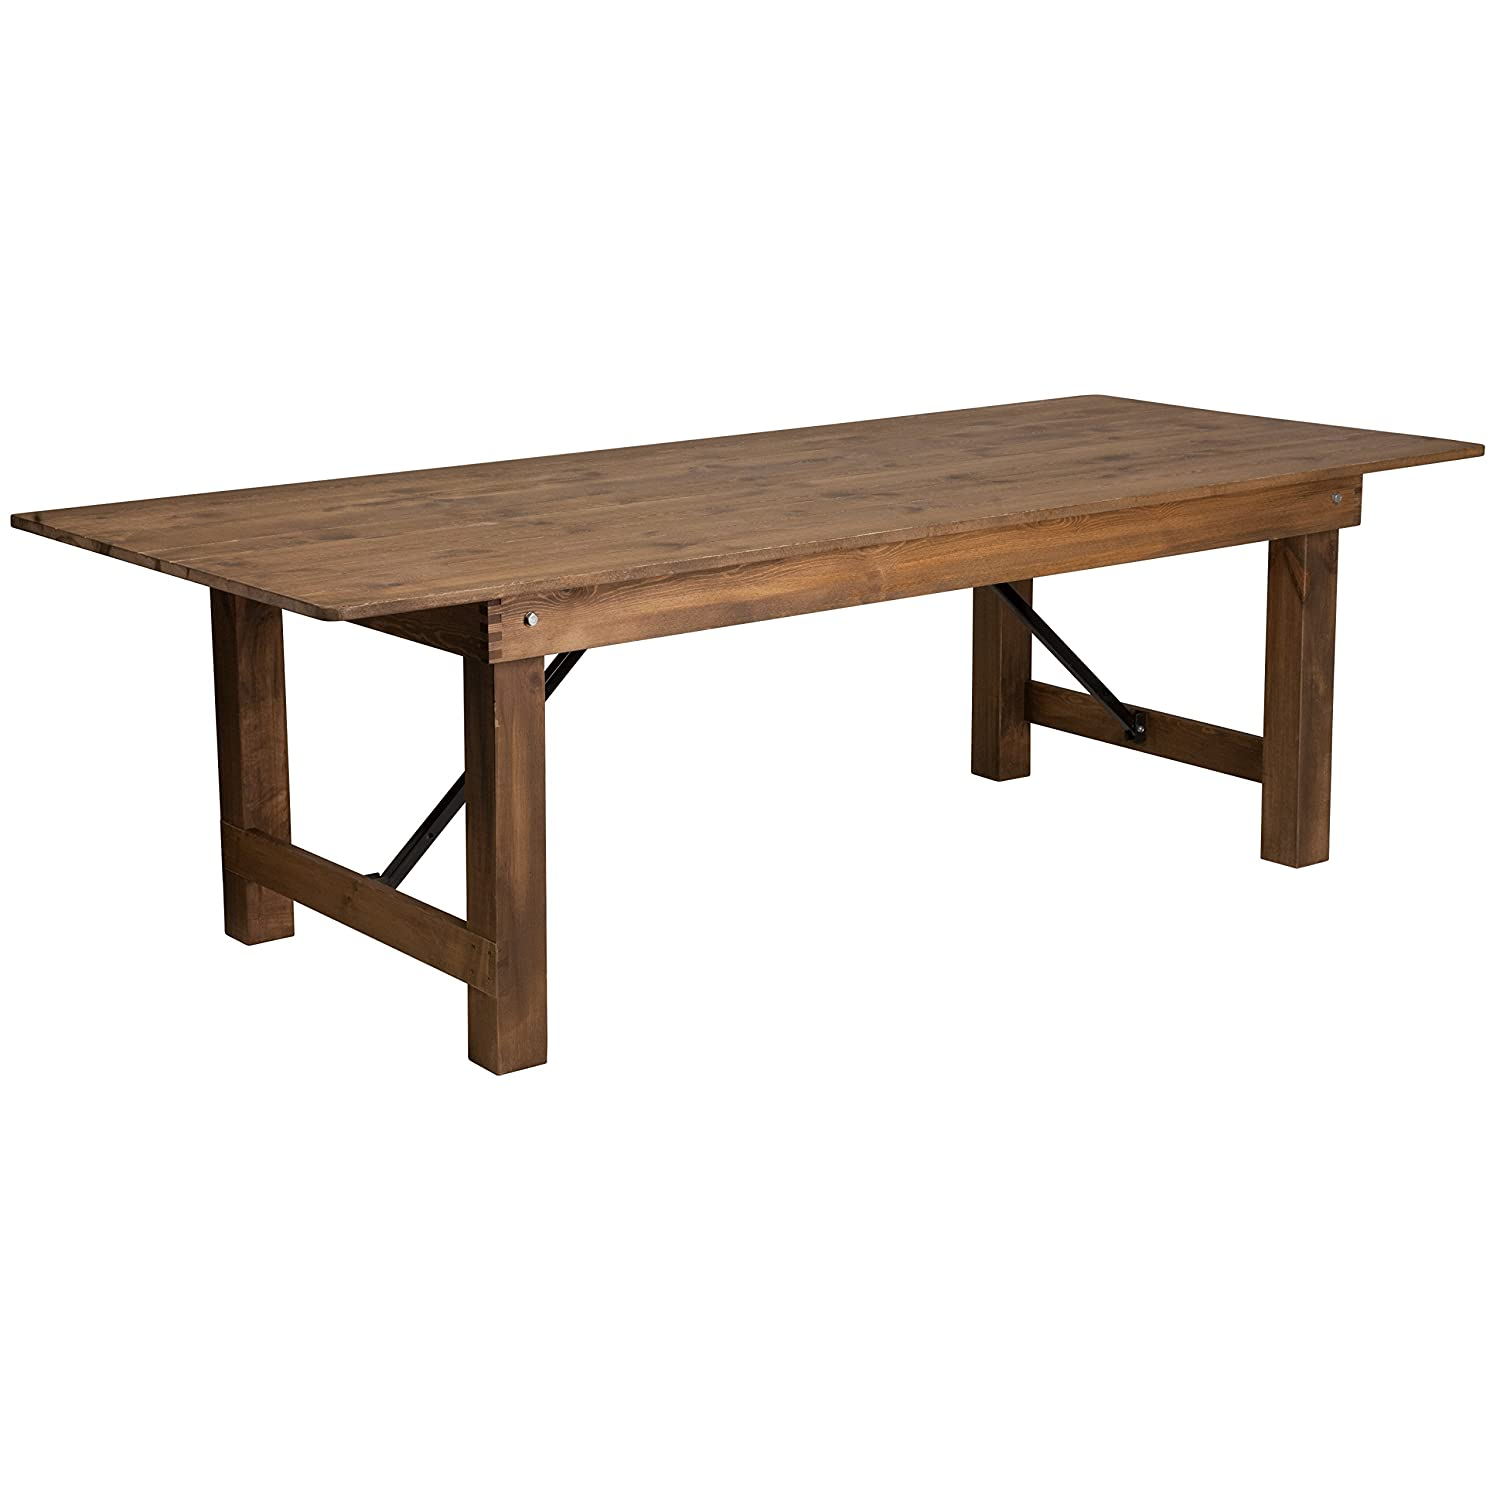 Flash Furniture HERCULES Series 8 x 40 Rectangular Antique Rustic Solid Pine Folding Farm Table